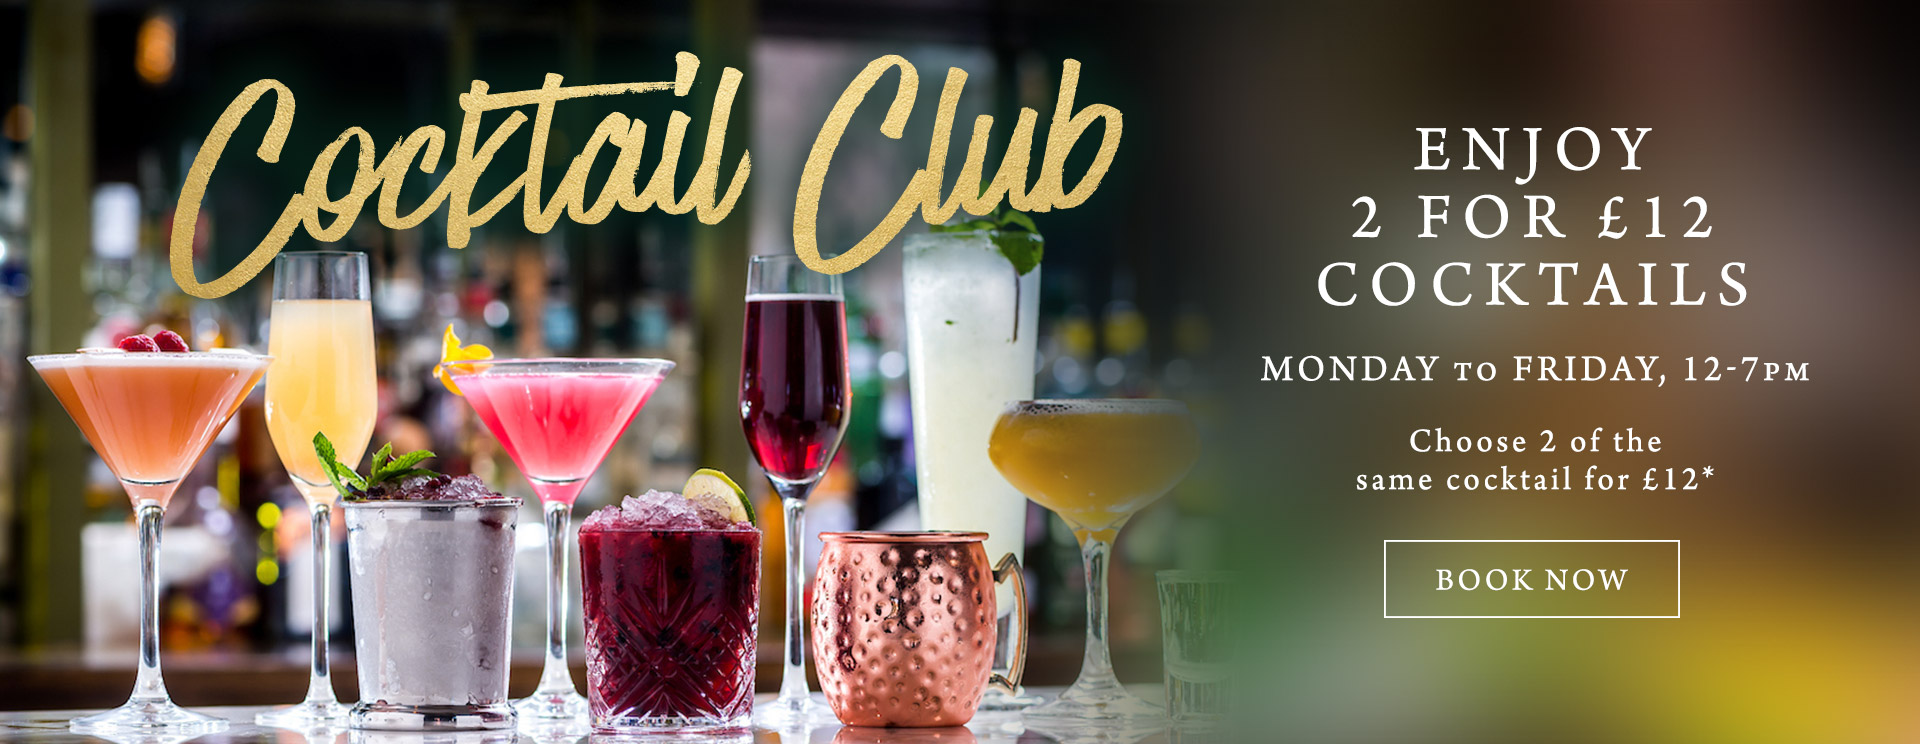 2 for £12 cocktails at The Cowper Arms